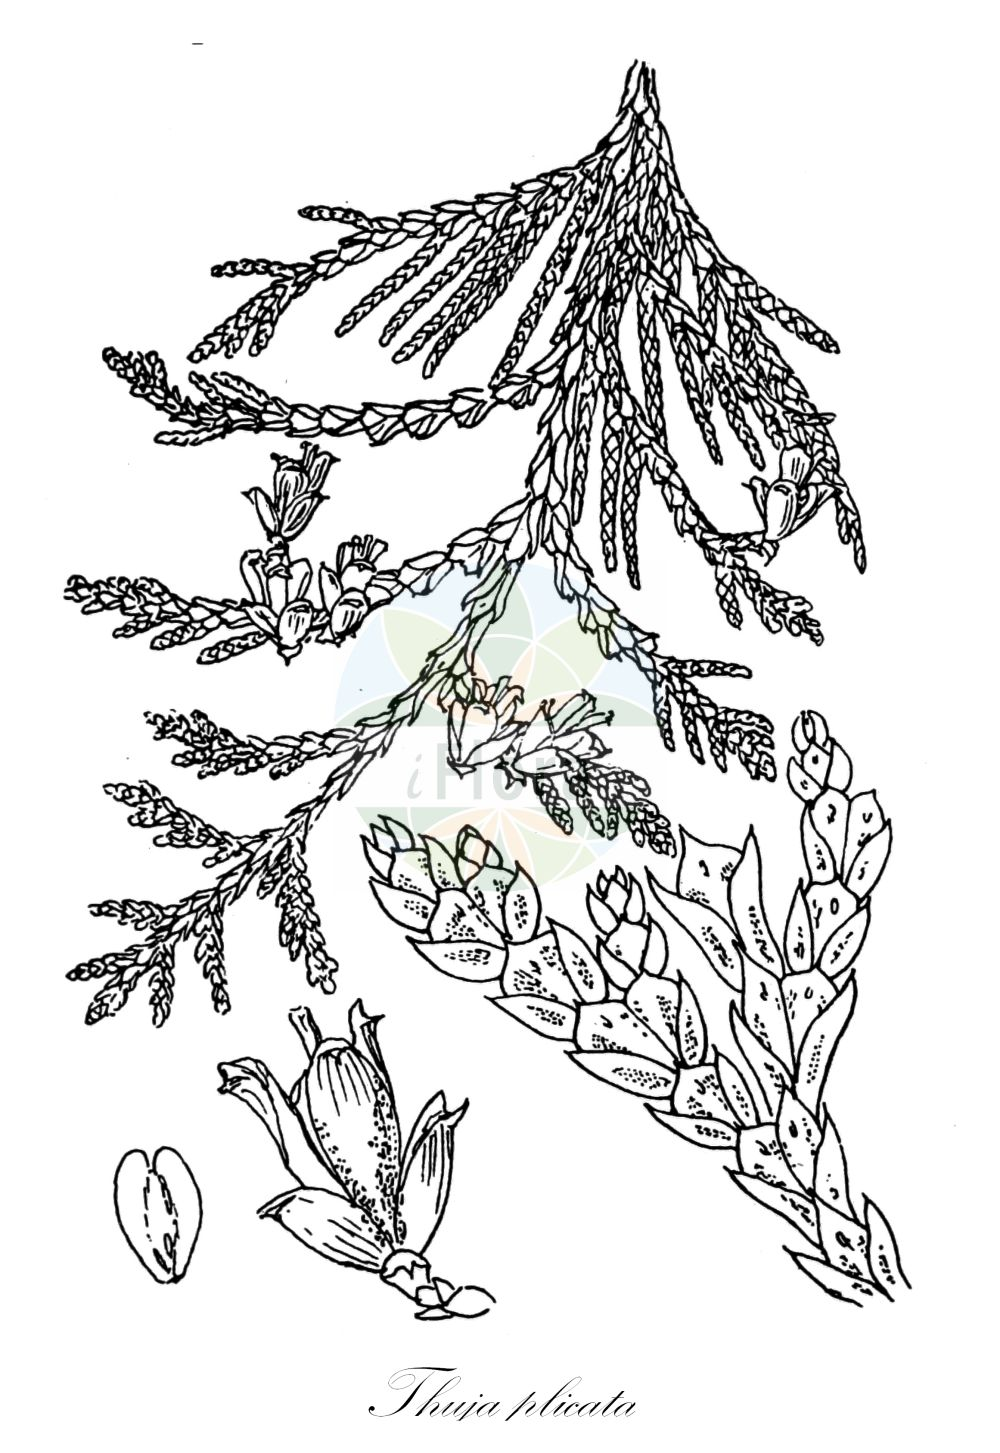 Historische Abbildung von Thuja plicata (Riesen-Lebensbaum - Western Red-cedar). Das Bild zeigt Blatt, Bluete, Frucht und Same. ---- Historical Drawing of Thuja plicata (Riesen-Lebensbaum - Western Red-cedar).The image is showing leaf, flower, fruit and seed.(Thuja plicata,Riesen-Lebensbaum,Western Red-cedar,British Columbian Red Cedar,Canoe Cedar,Giant Arbor Vitae,Shinglewood,Thuja,Lebensbaum,Cedar,Cupressaceae,Zypressengewaechse,Cypress family,Blatt,Bluete,Frucht,Same,leaf,flower,fruit,seed,Dallimore & Bruce (1923))